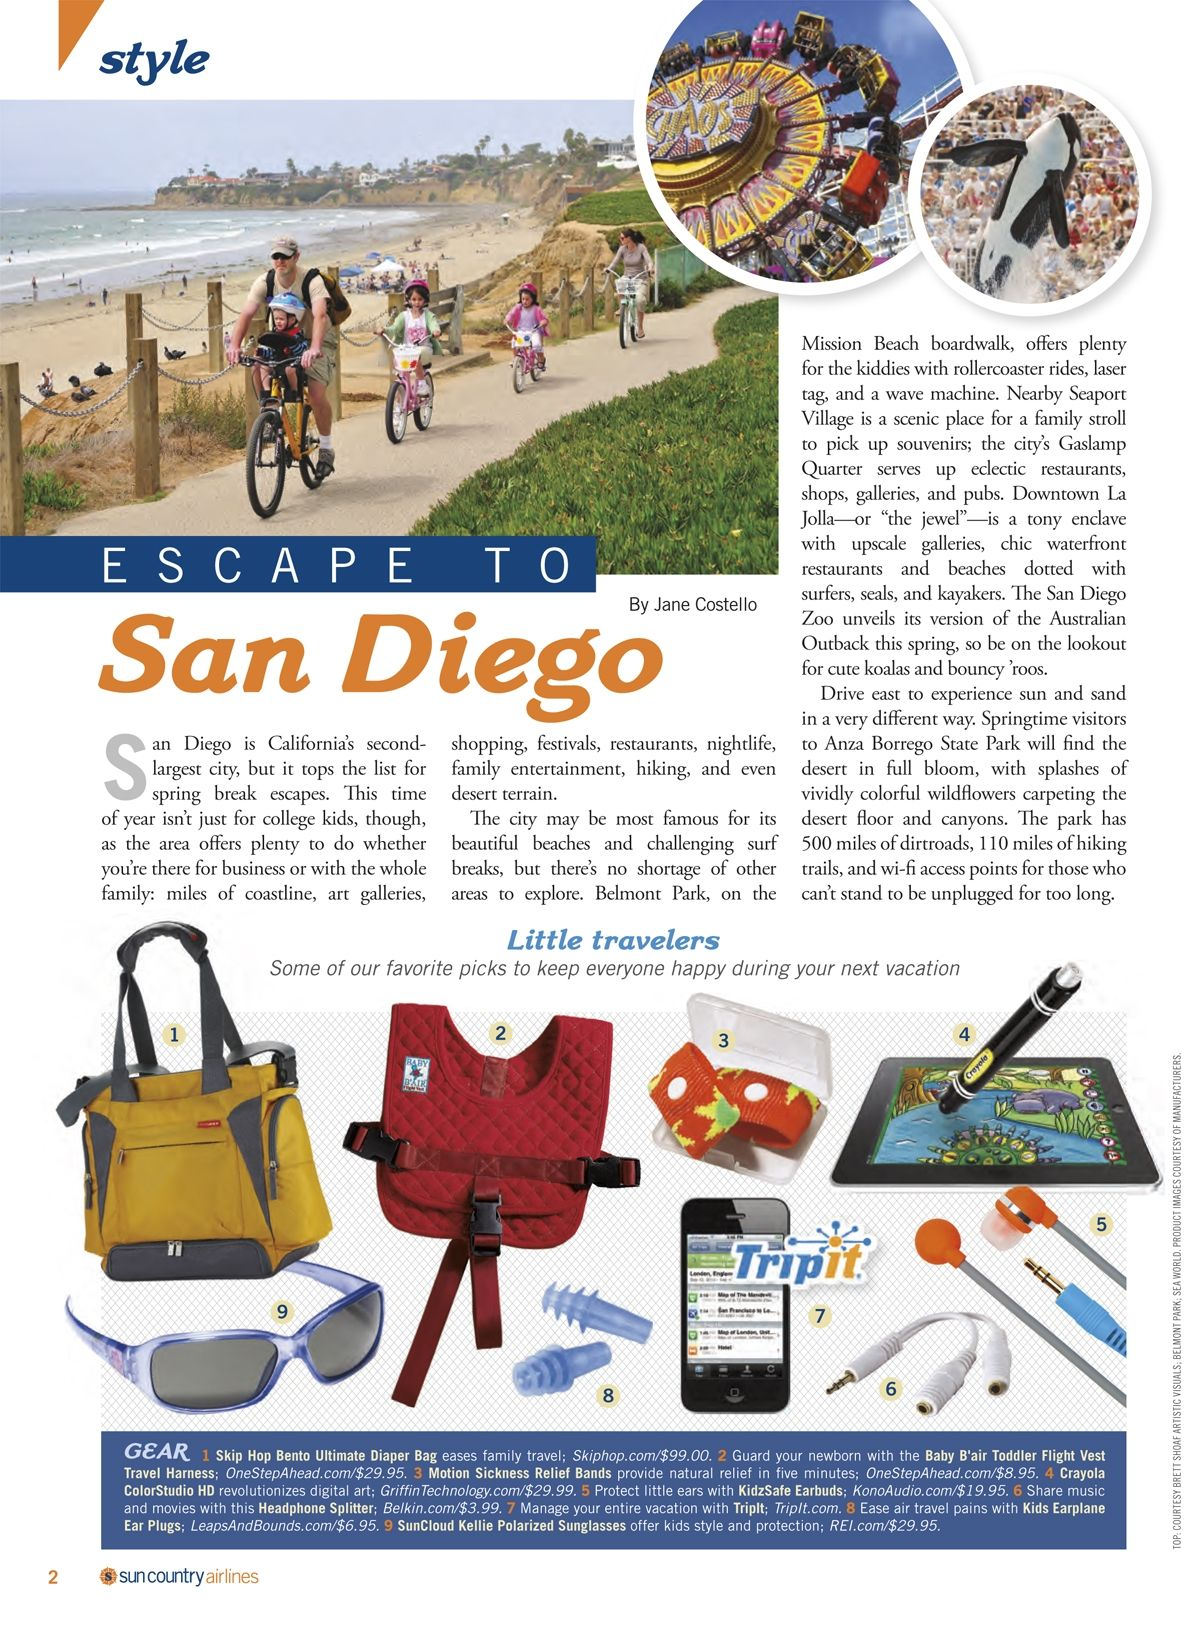 Sun Country Airlines' In-Flight Magazine's